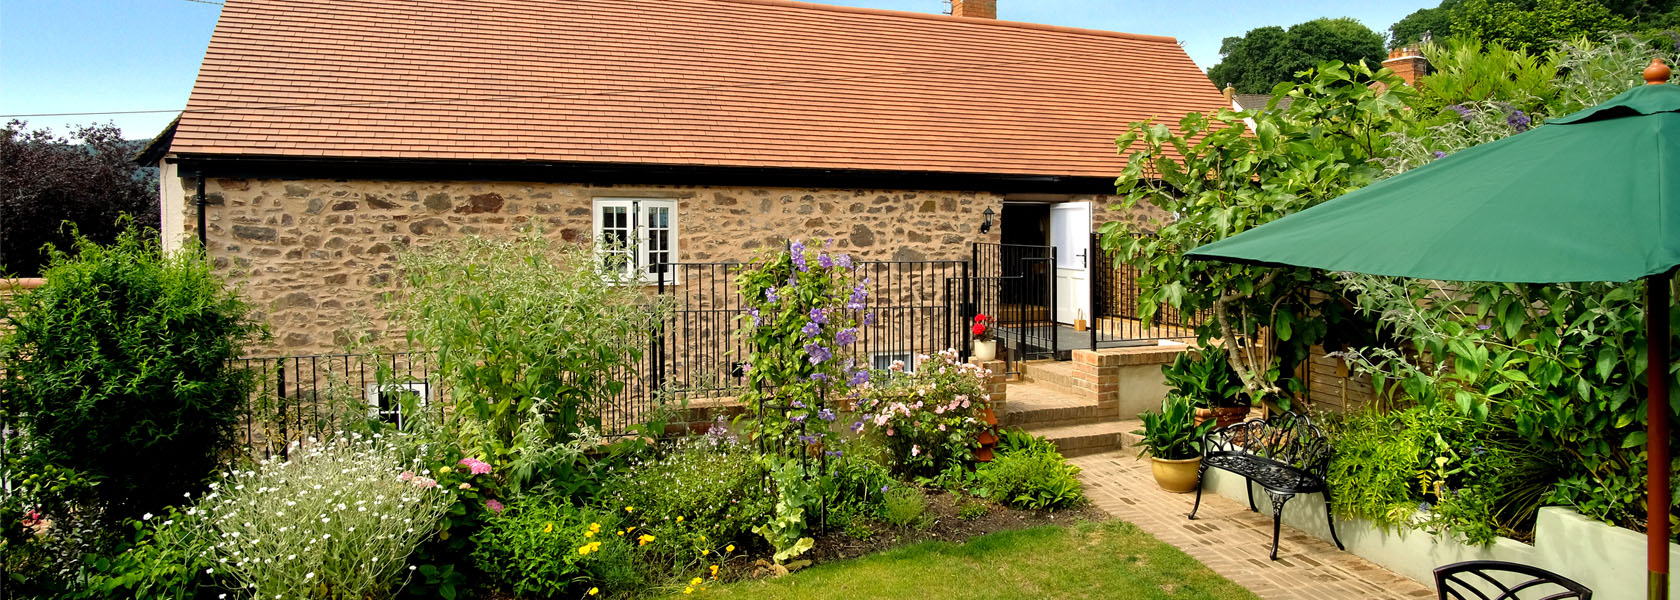 High-end Accommodation in Stone Barn - Our Perfect UK Holiday